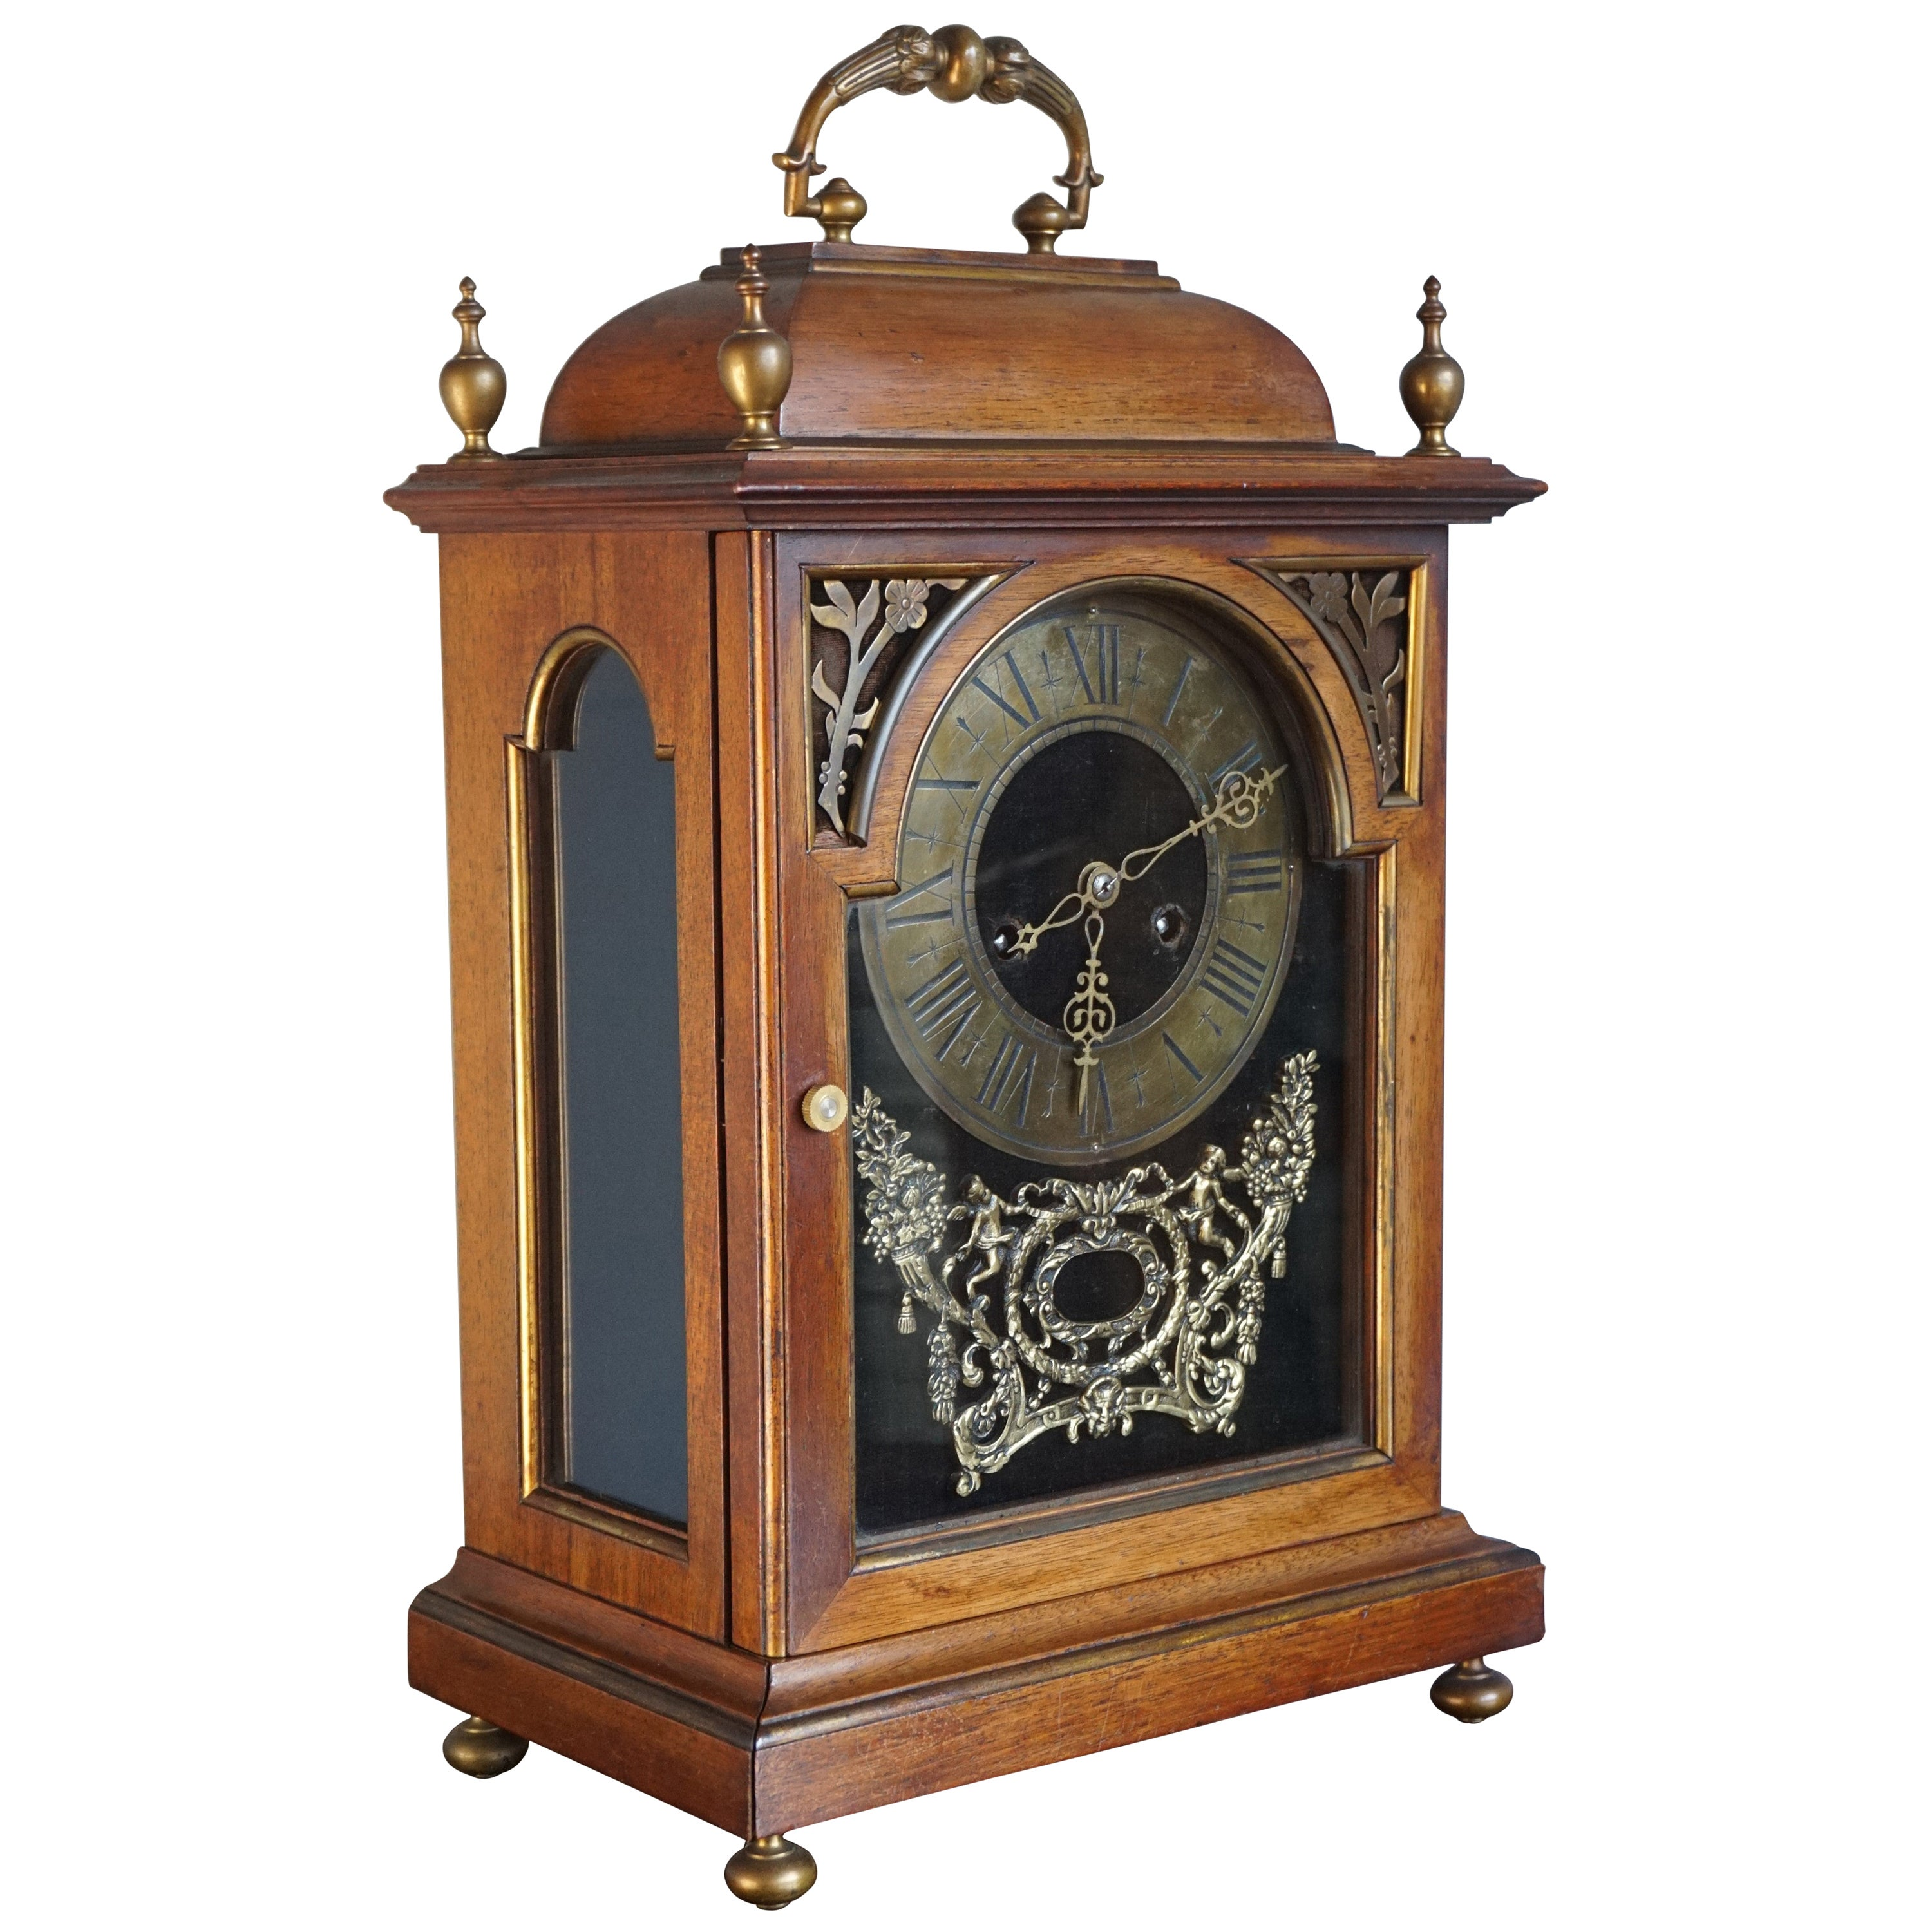 Large Antique Renaissance Revival Nutwood and Bronze Table or Mantel Clock 1800s